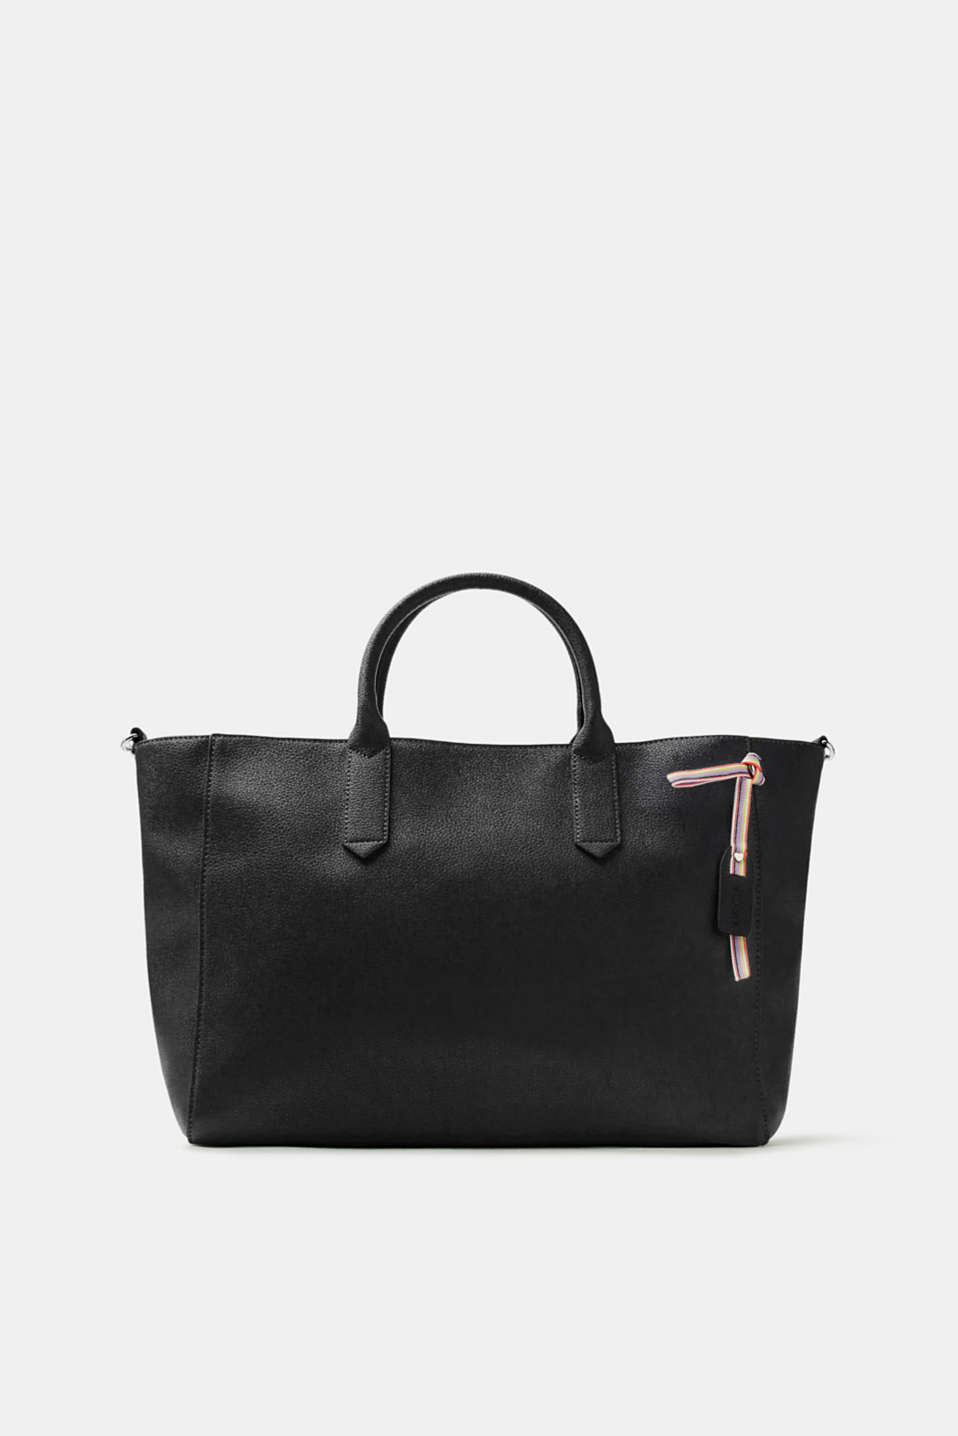 This tote bag is extremely elegant and timeless - the perfect accessory.